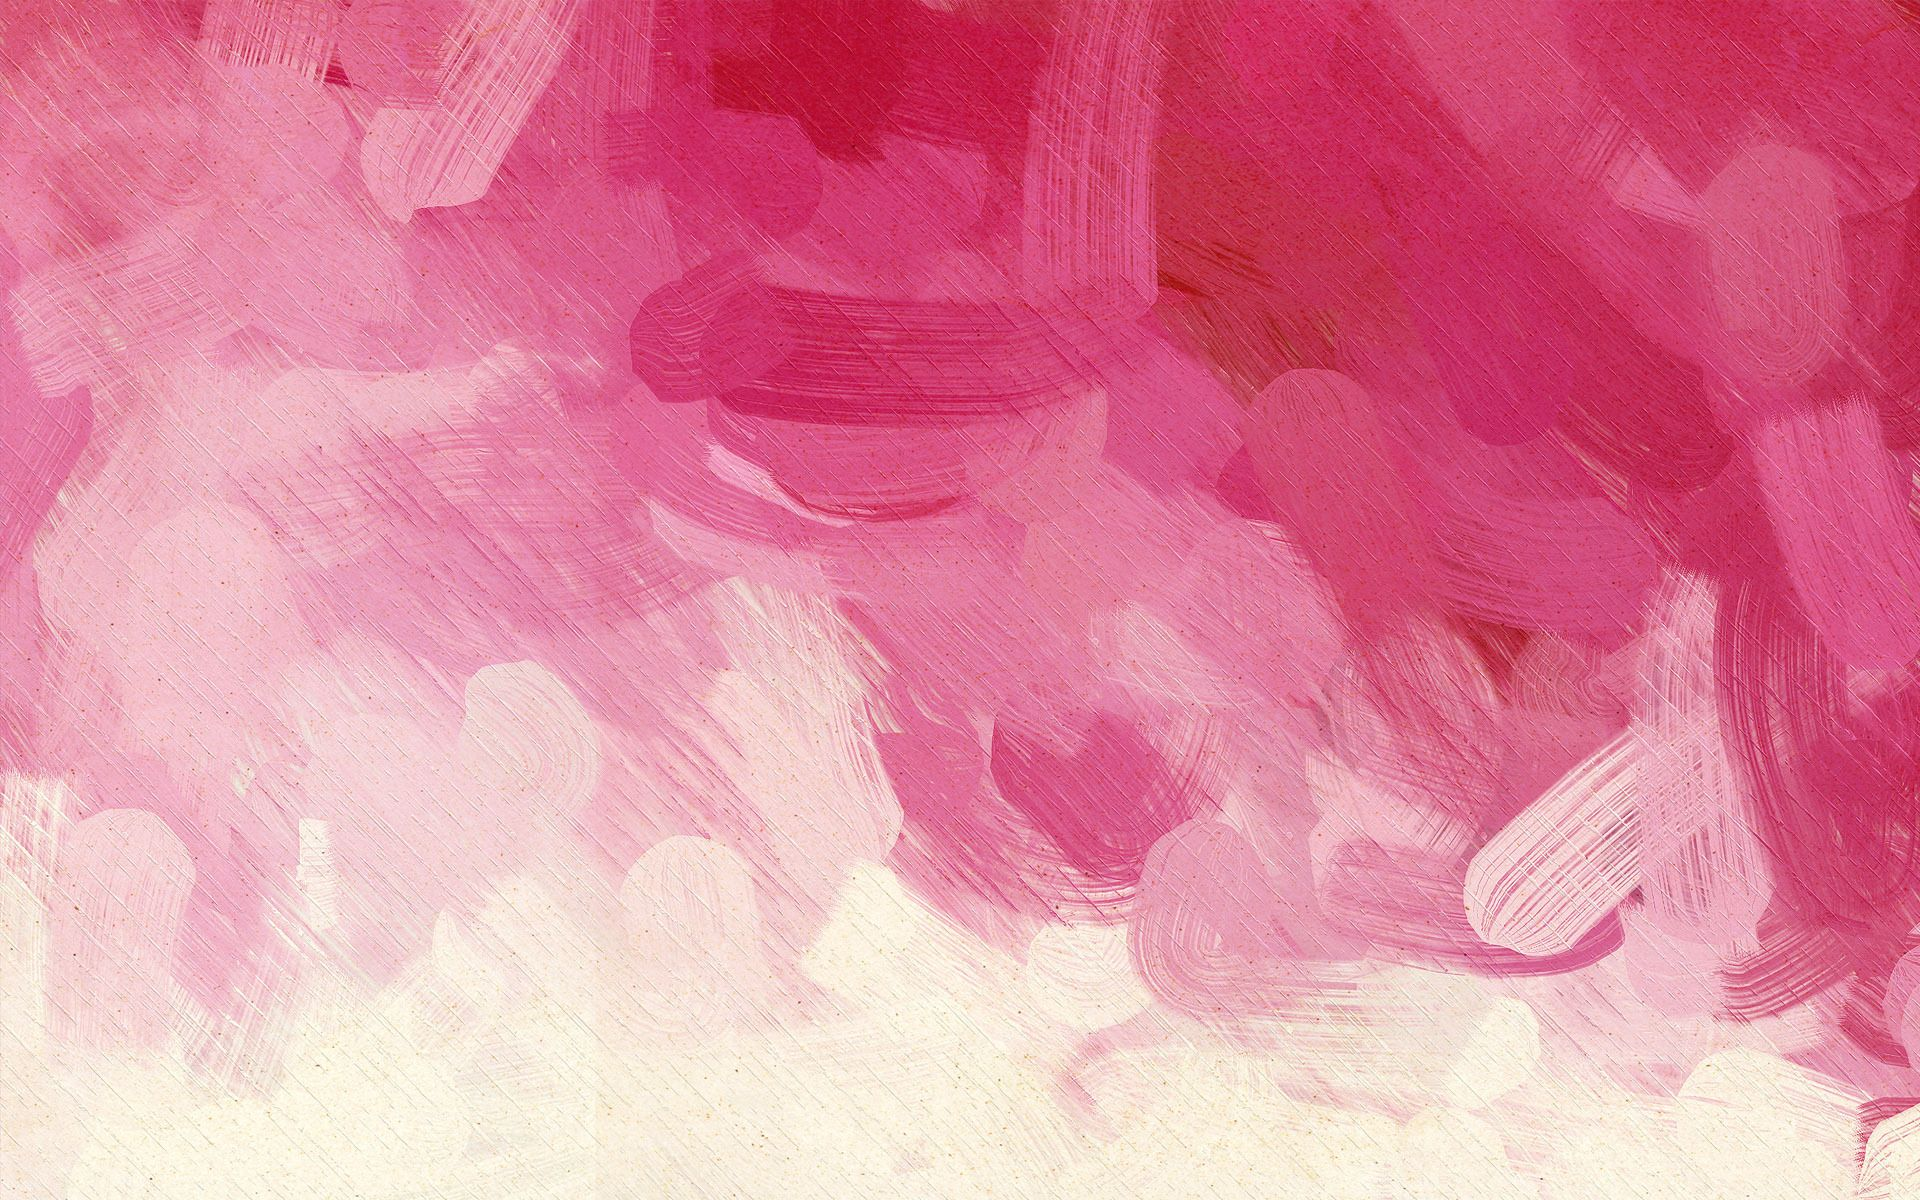 artsy painted backgrounds Pink paint strokes HD Wallpaper 1920x1200